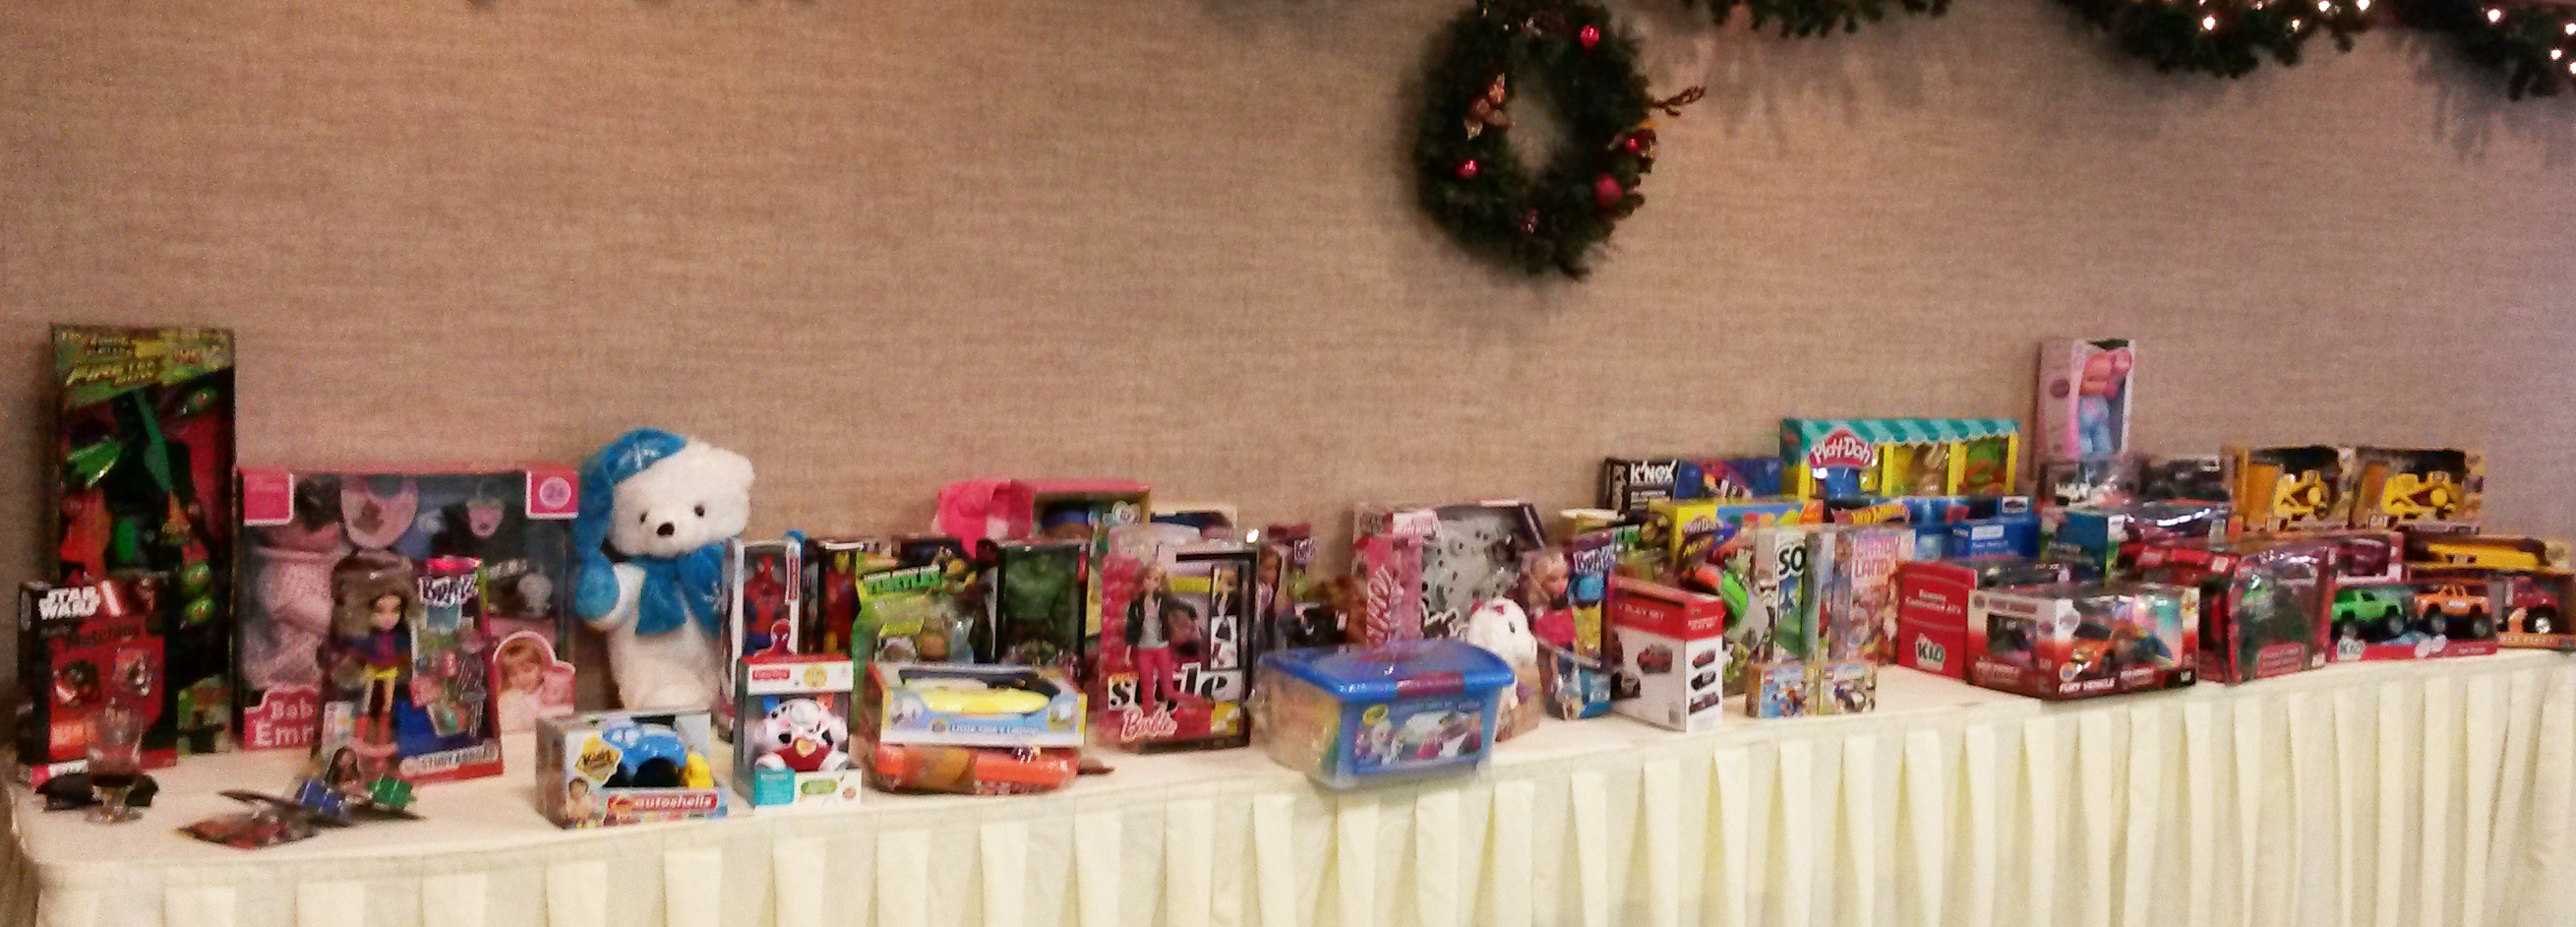 toys for tots donations(1).jpg